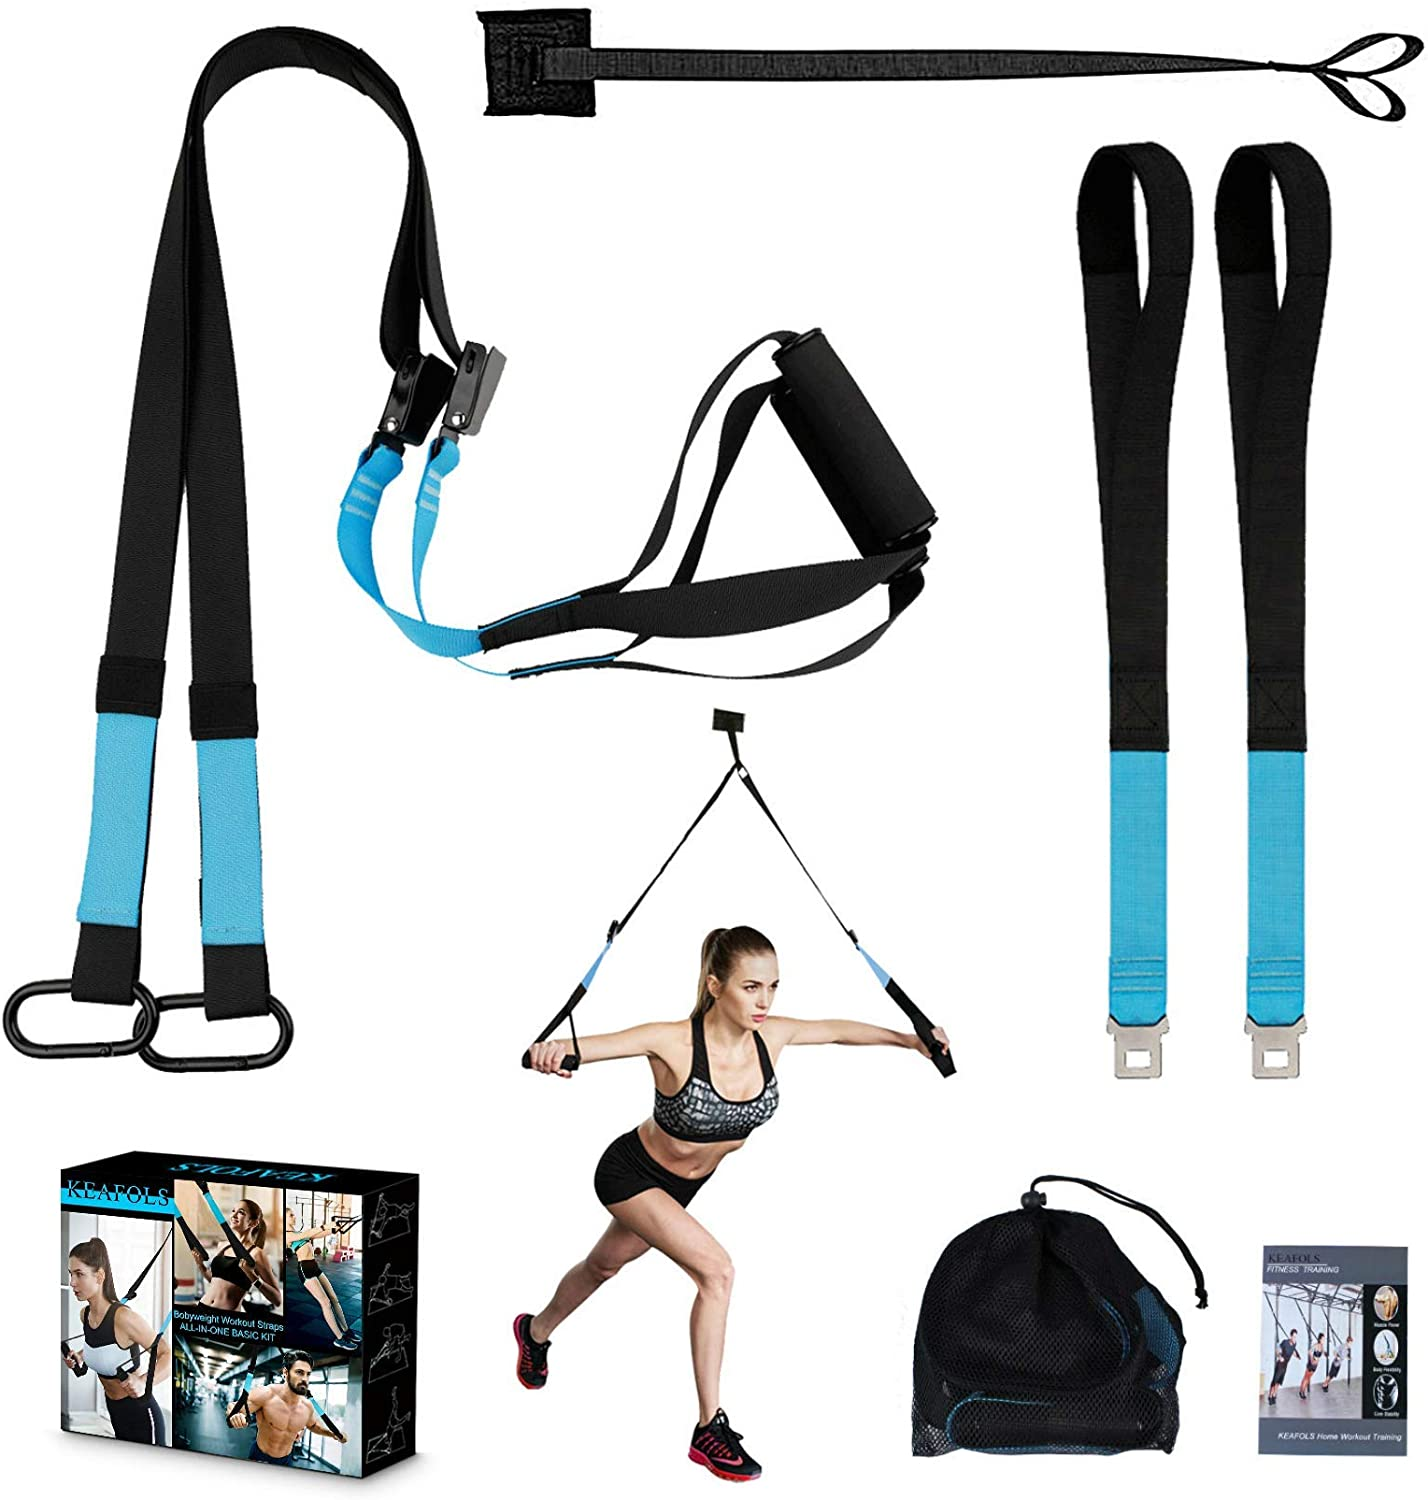 Amazon.com : KEAFOLS Bodyweight Fitness Resistance Kit Extension Strap for Door Pull Up Bar, Powerlifting Strength Workout Kit Straps Home Gym Exercise Full-Body Workout Equipment for Complete Body Core Exercise : Sports